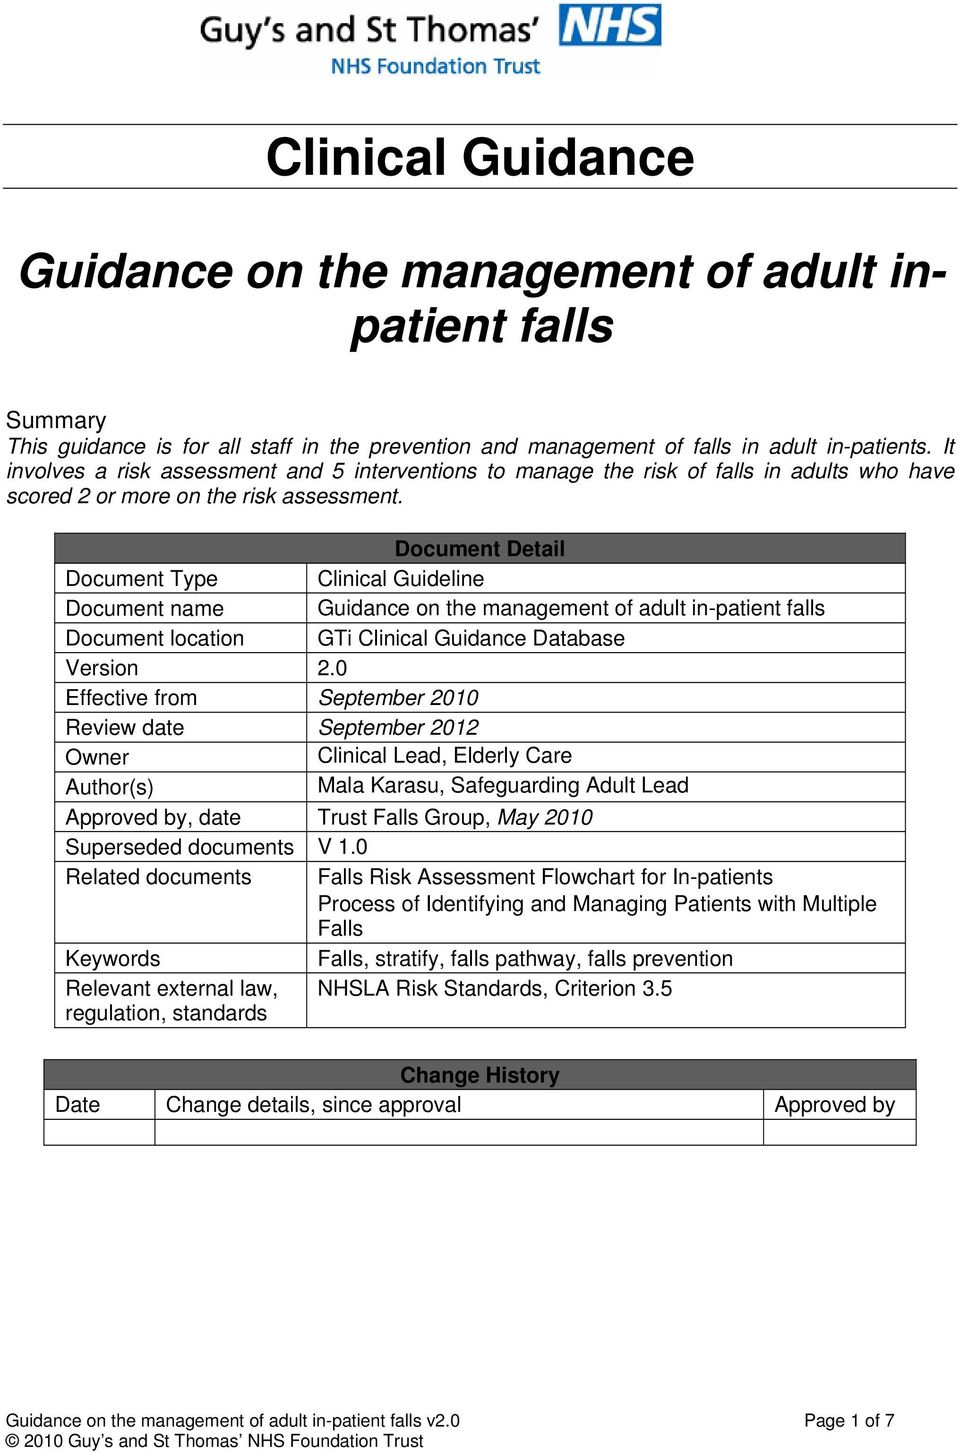 Dcument Detail Dcument Type Clinical Guideline Dcument name Guidance n the management f adult in-patient falls Dcument lcatin GTi Clinical Guidance Database Versin 2.